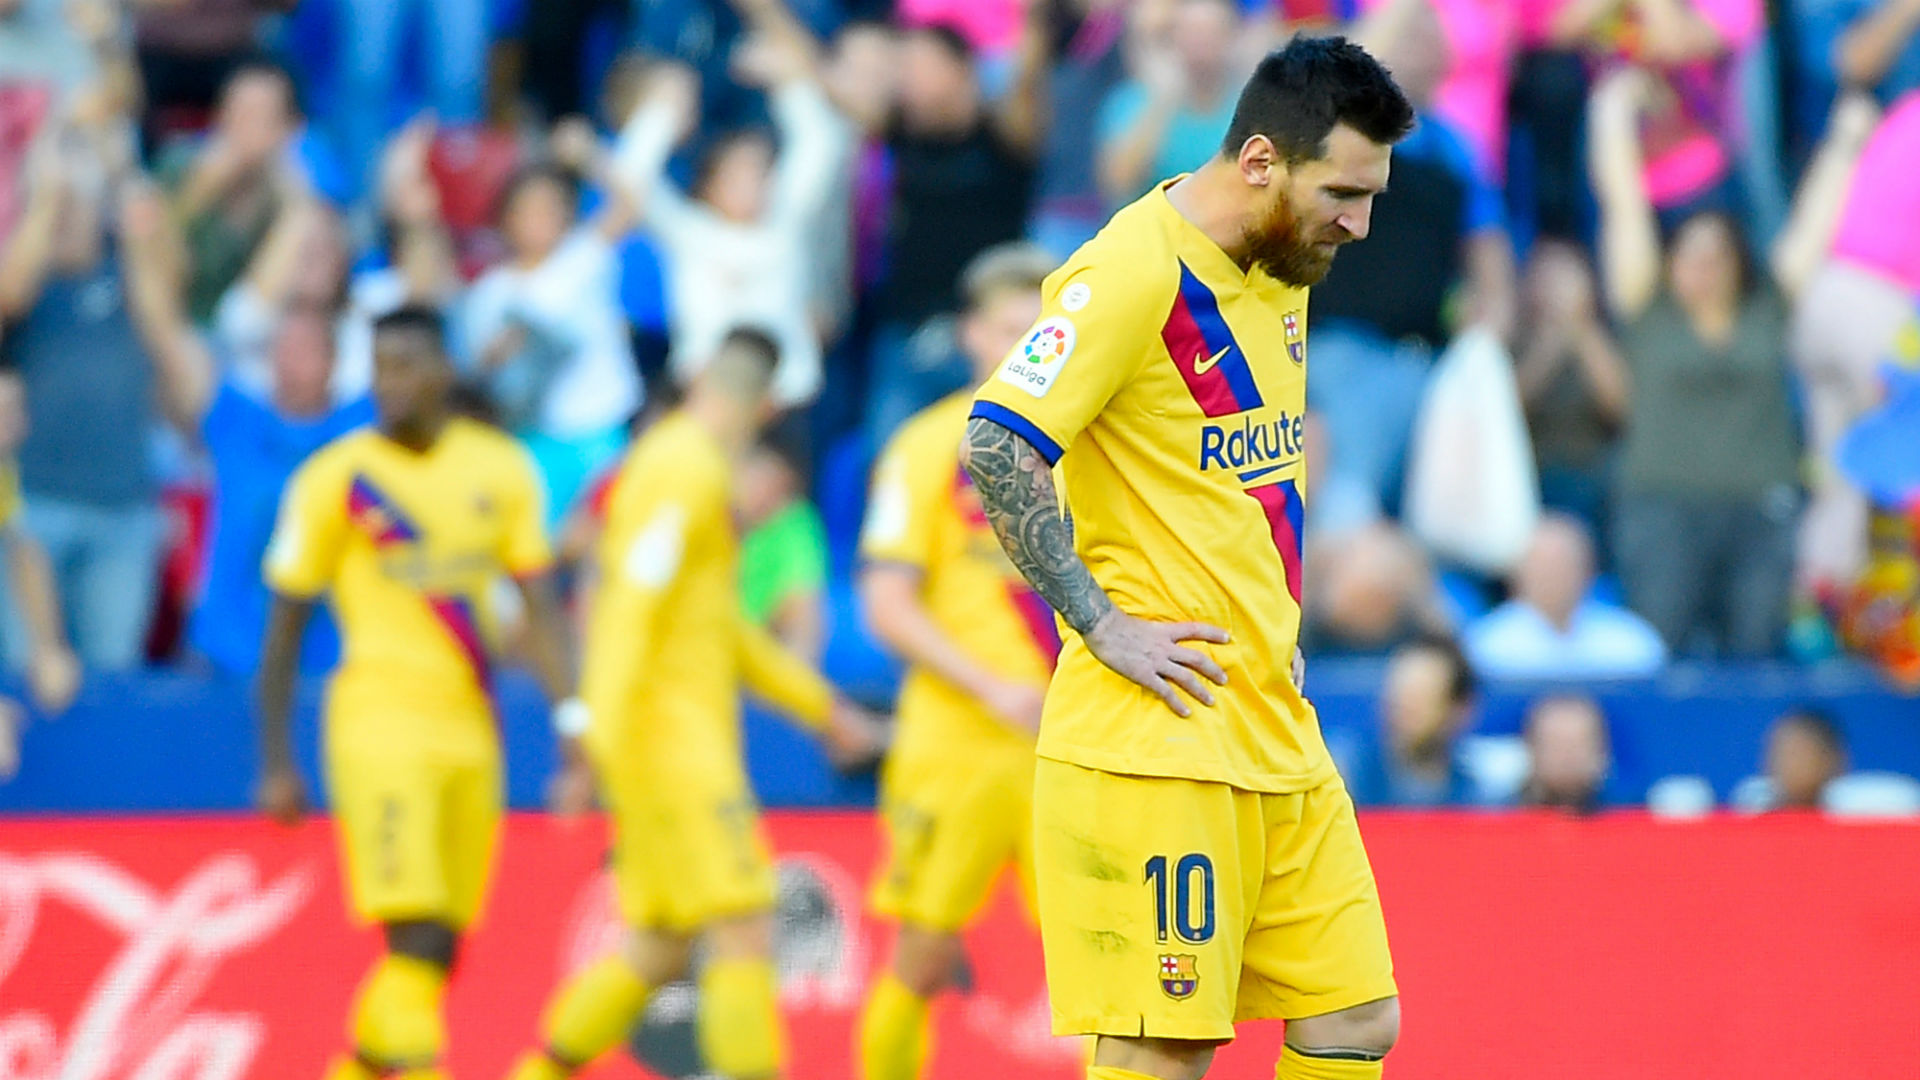 'This happened at Atletico too' - Griezmann not worried by slow Barca start after quiet performance against Levante